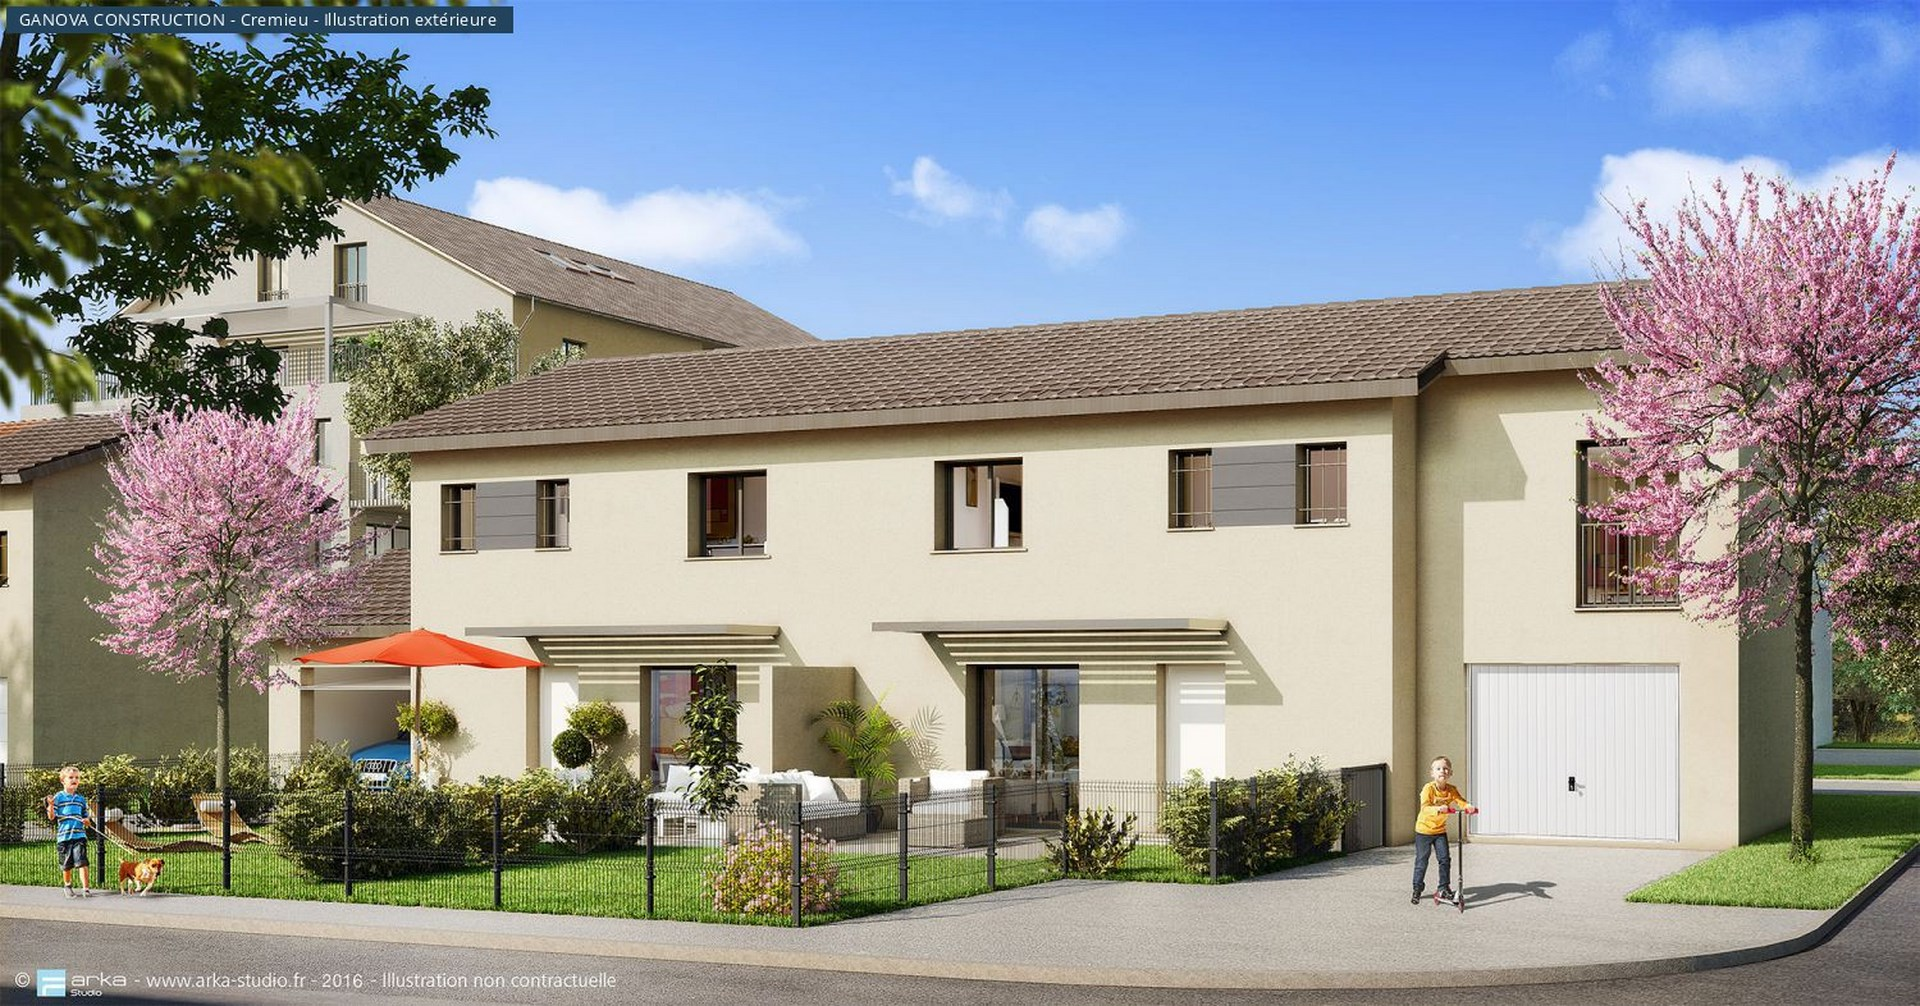 Prix construction maison contemporaine m2 menuiserie for Prix construction maison neuve m2